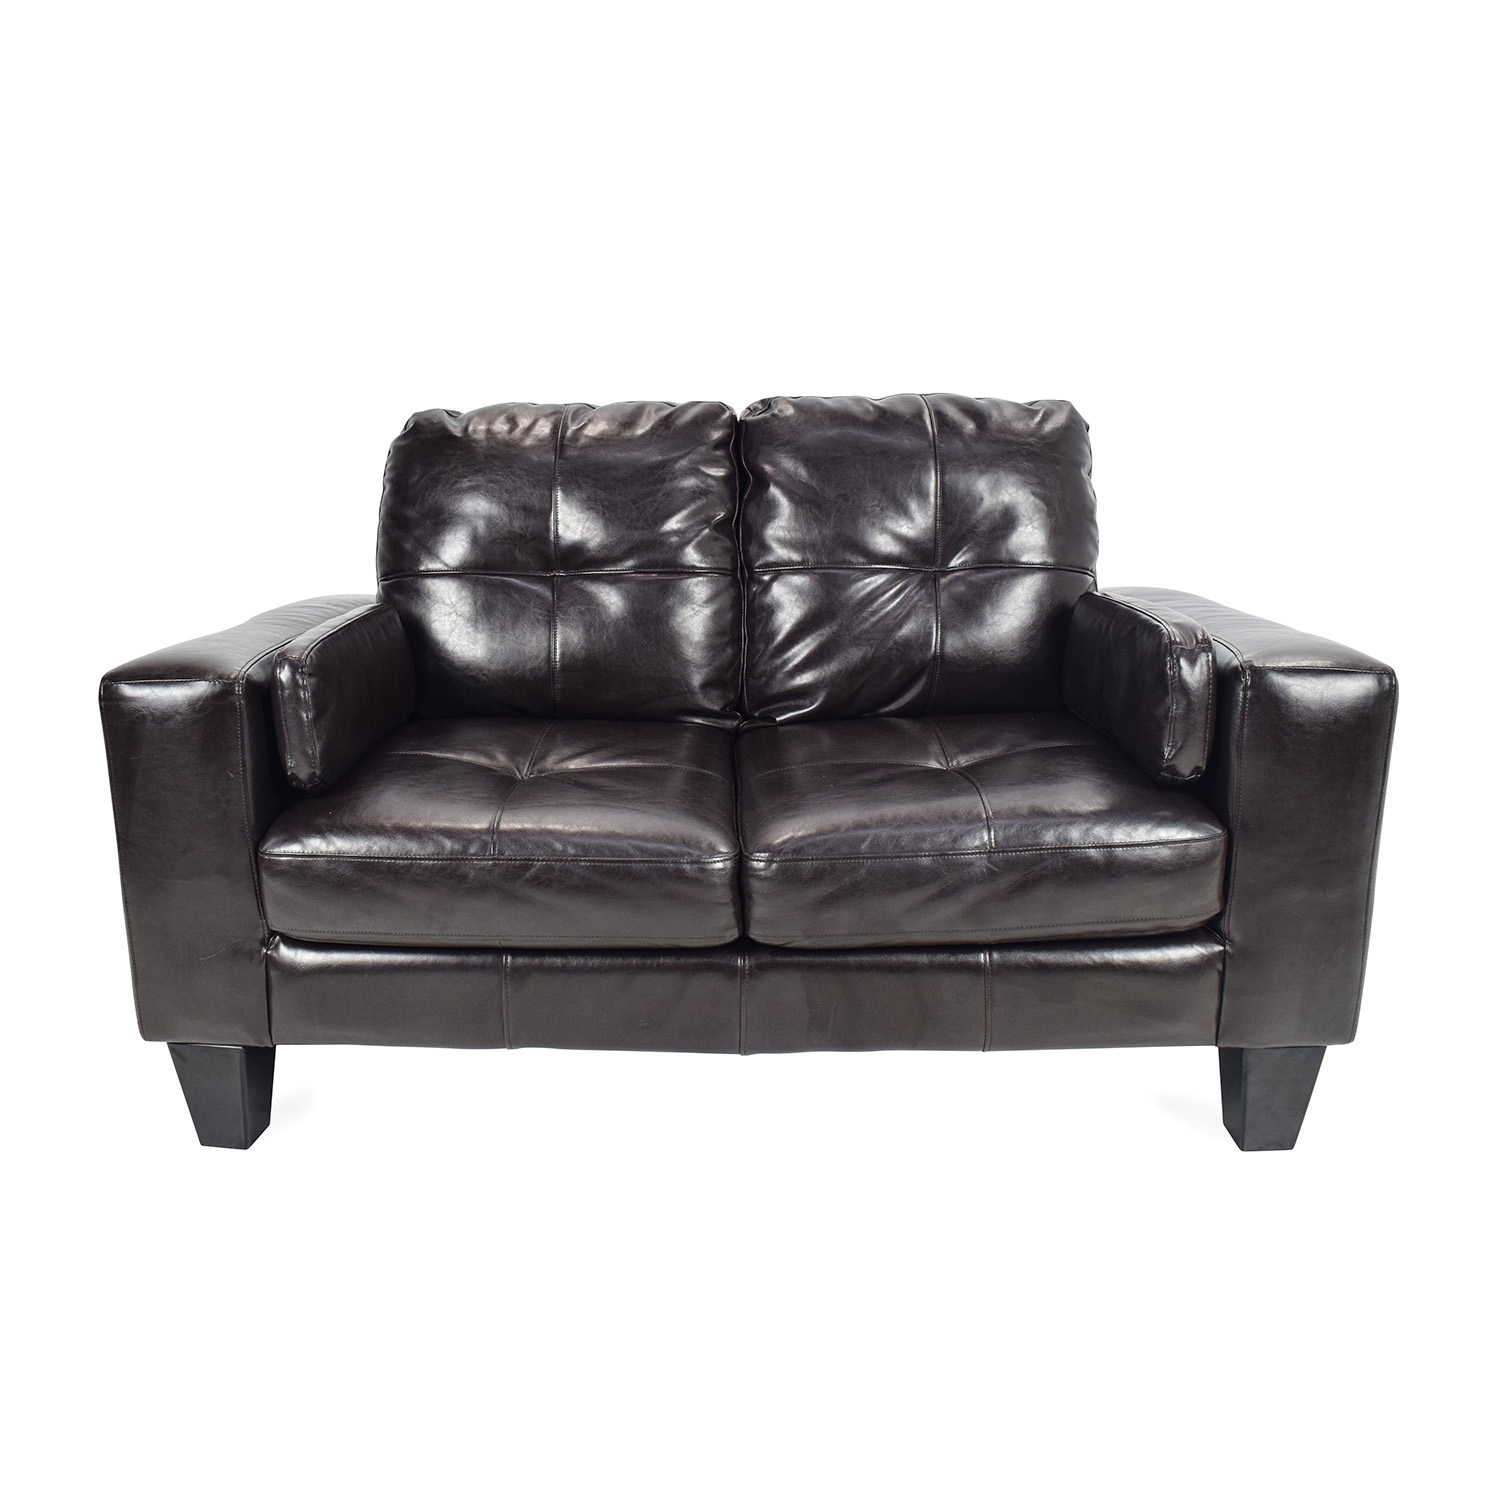 shop Jennifer Convertibles Jennifer Convertibles Brown Couch online